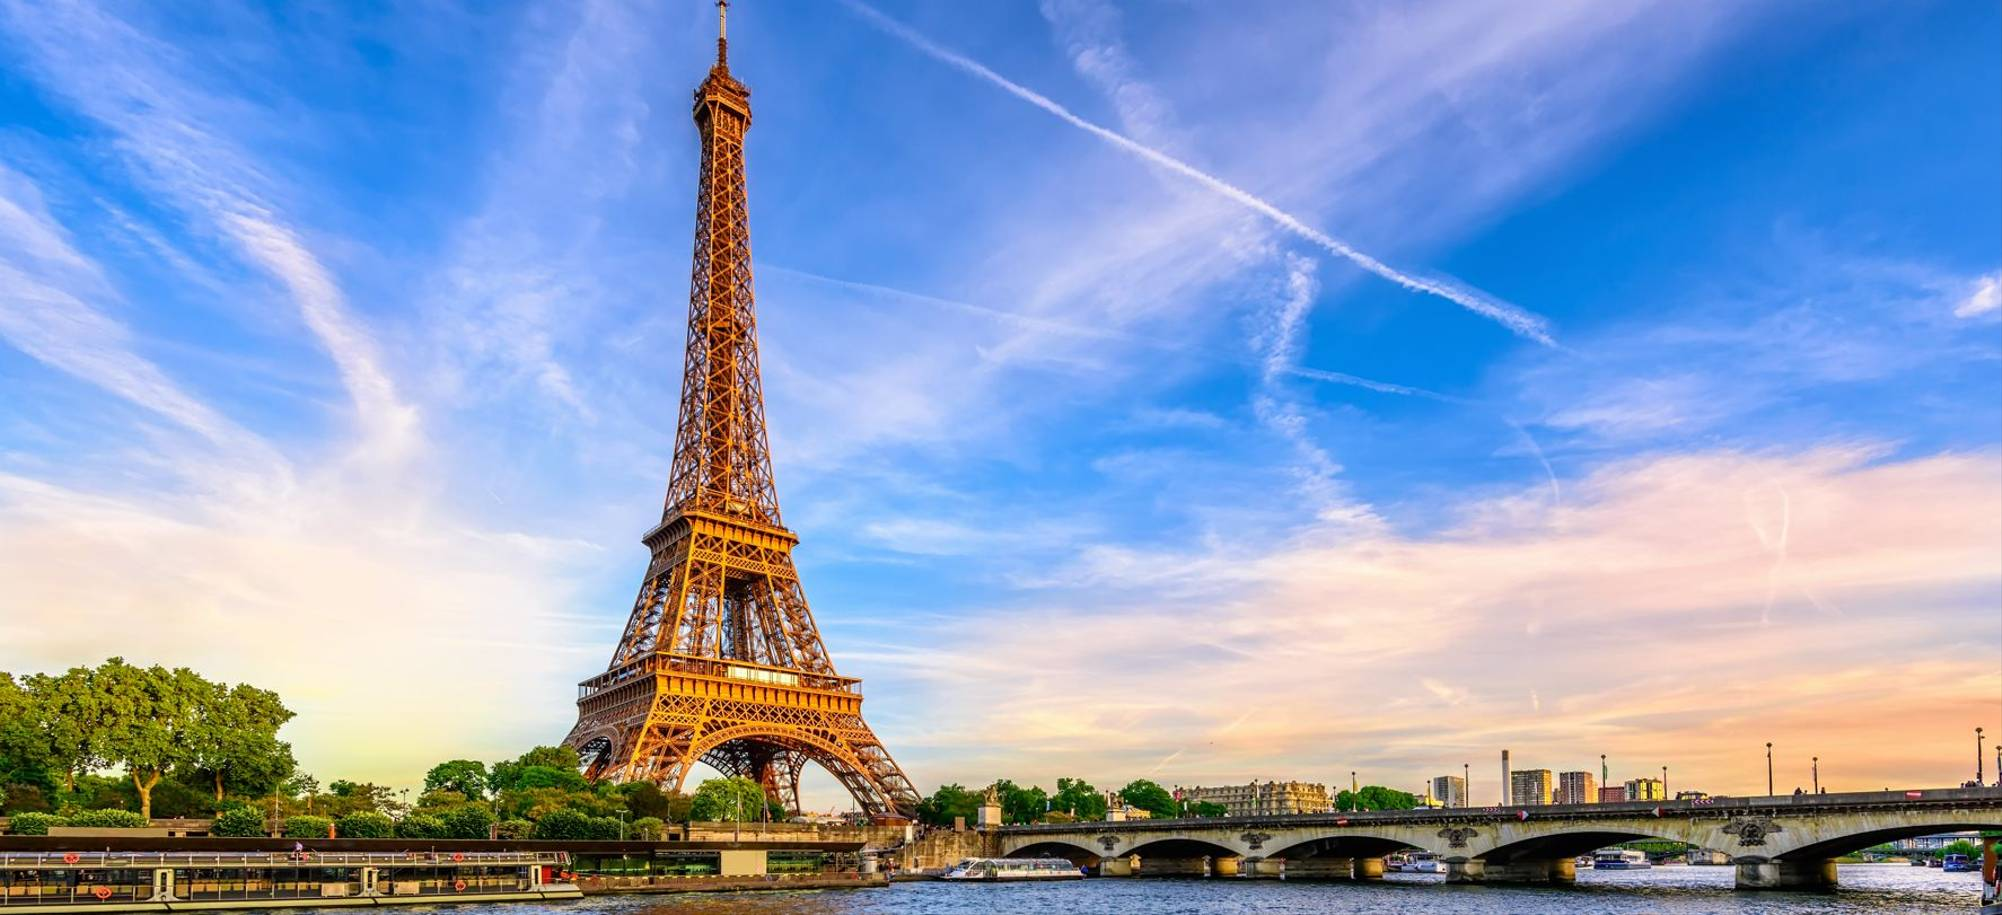 Le Havre   Eiffel Tower, Paris   Itinerary Desktop